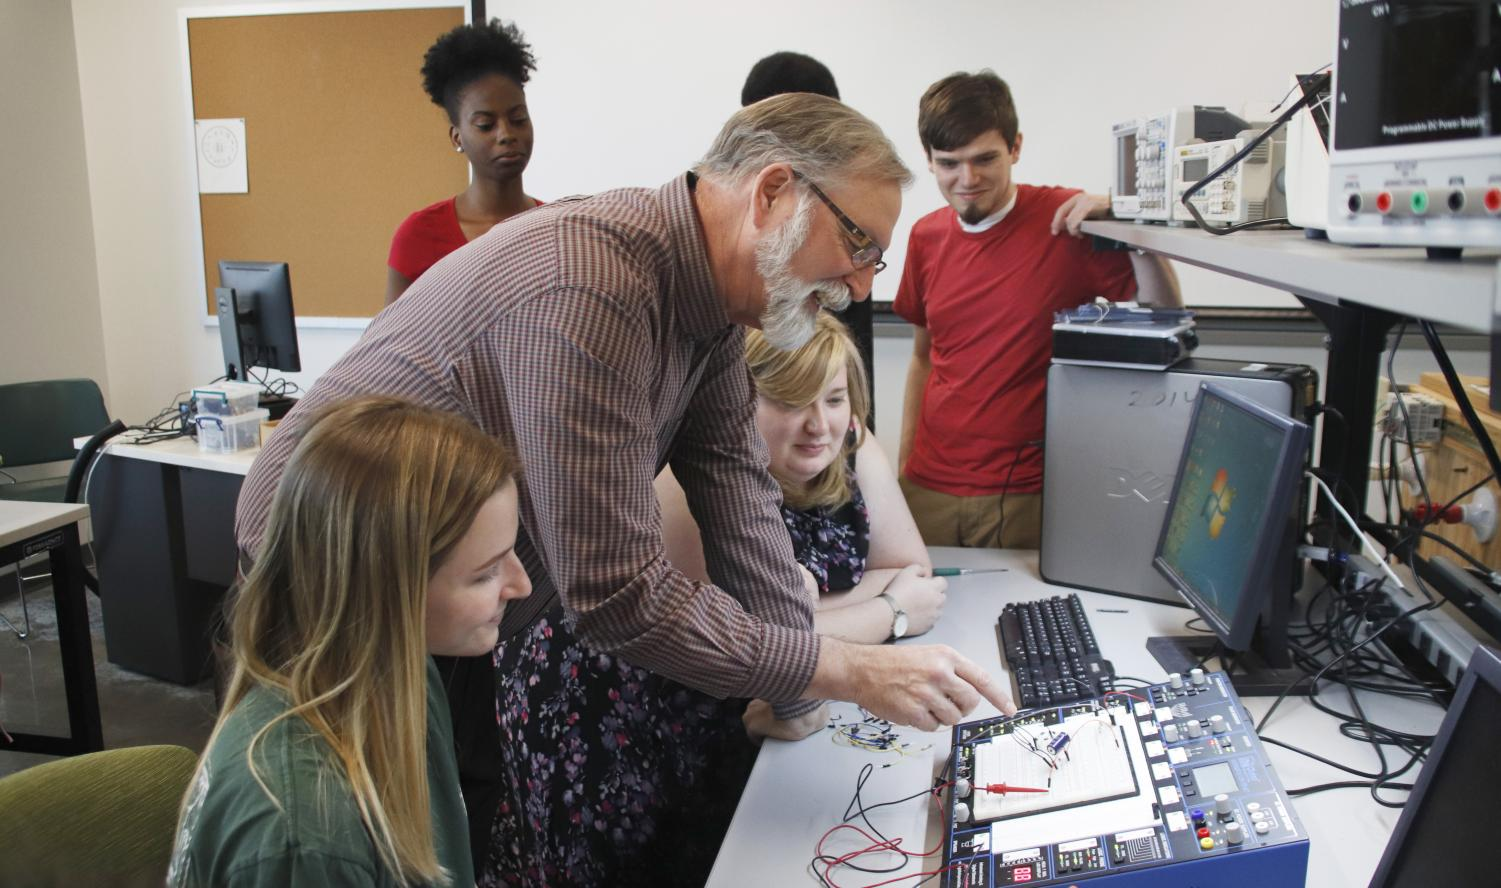 The Department of Industrial and Engineering Technology prepares students for industry through hands-on learning.